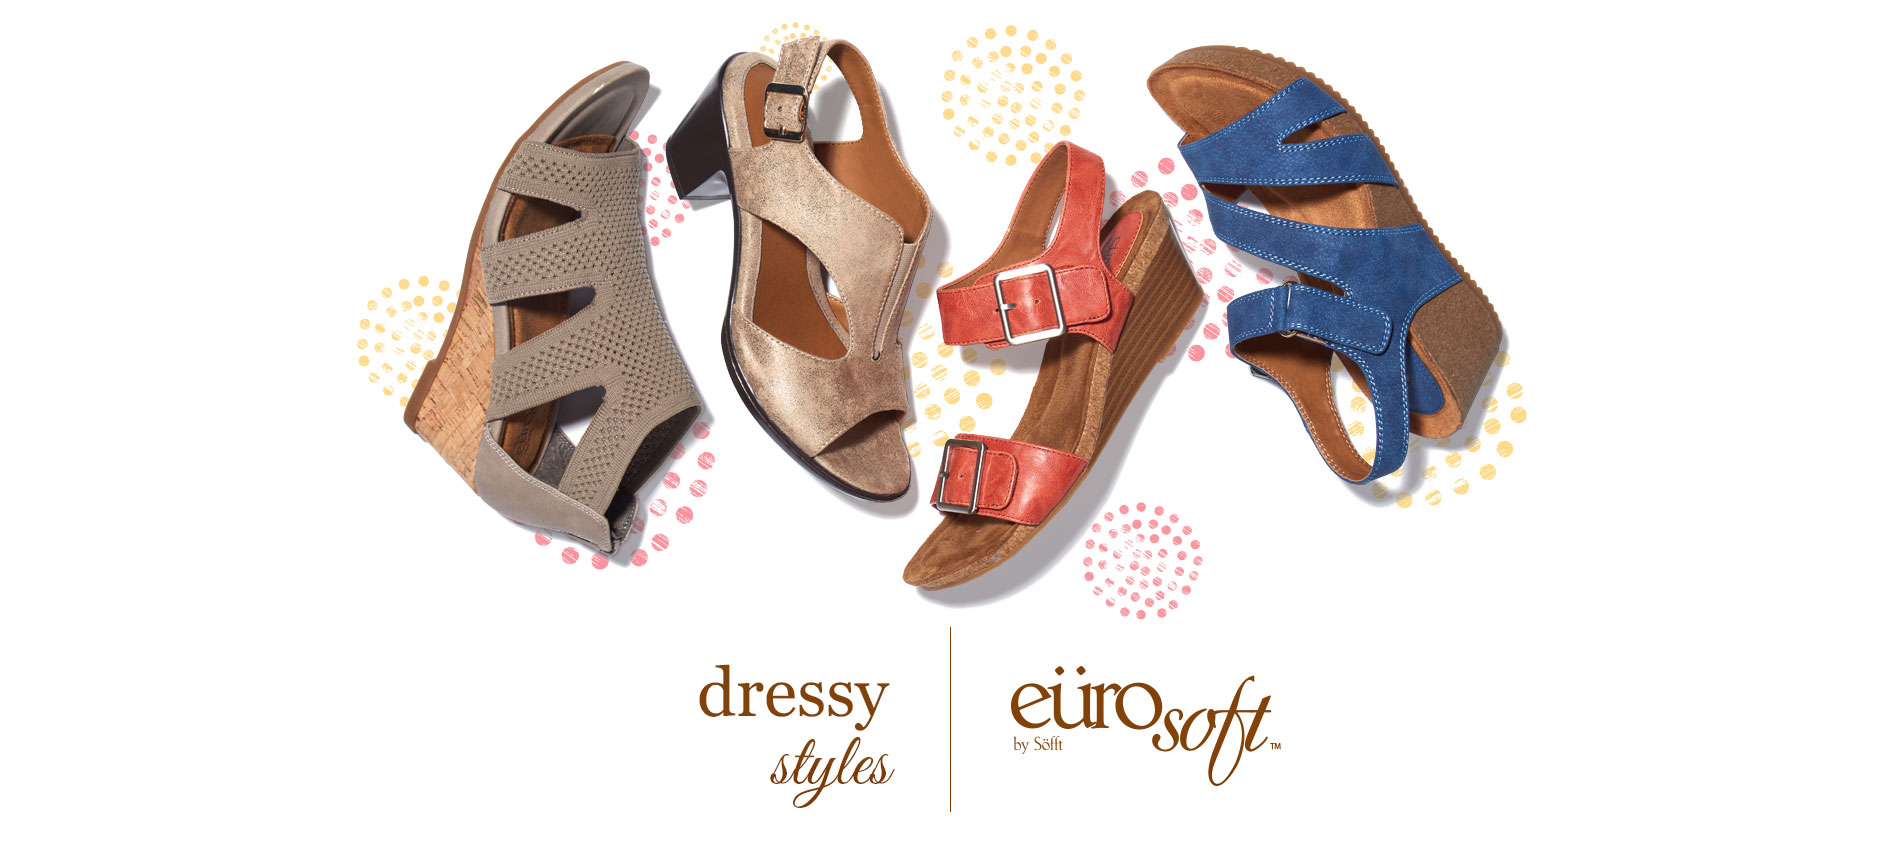 Dressy Styles. Eurosoft by Sofft. Shop All Styles